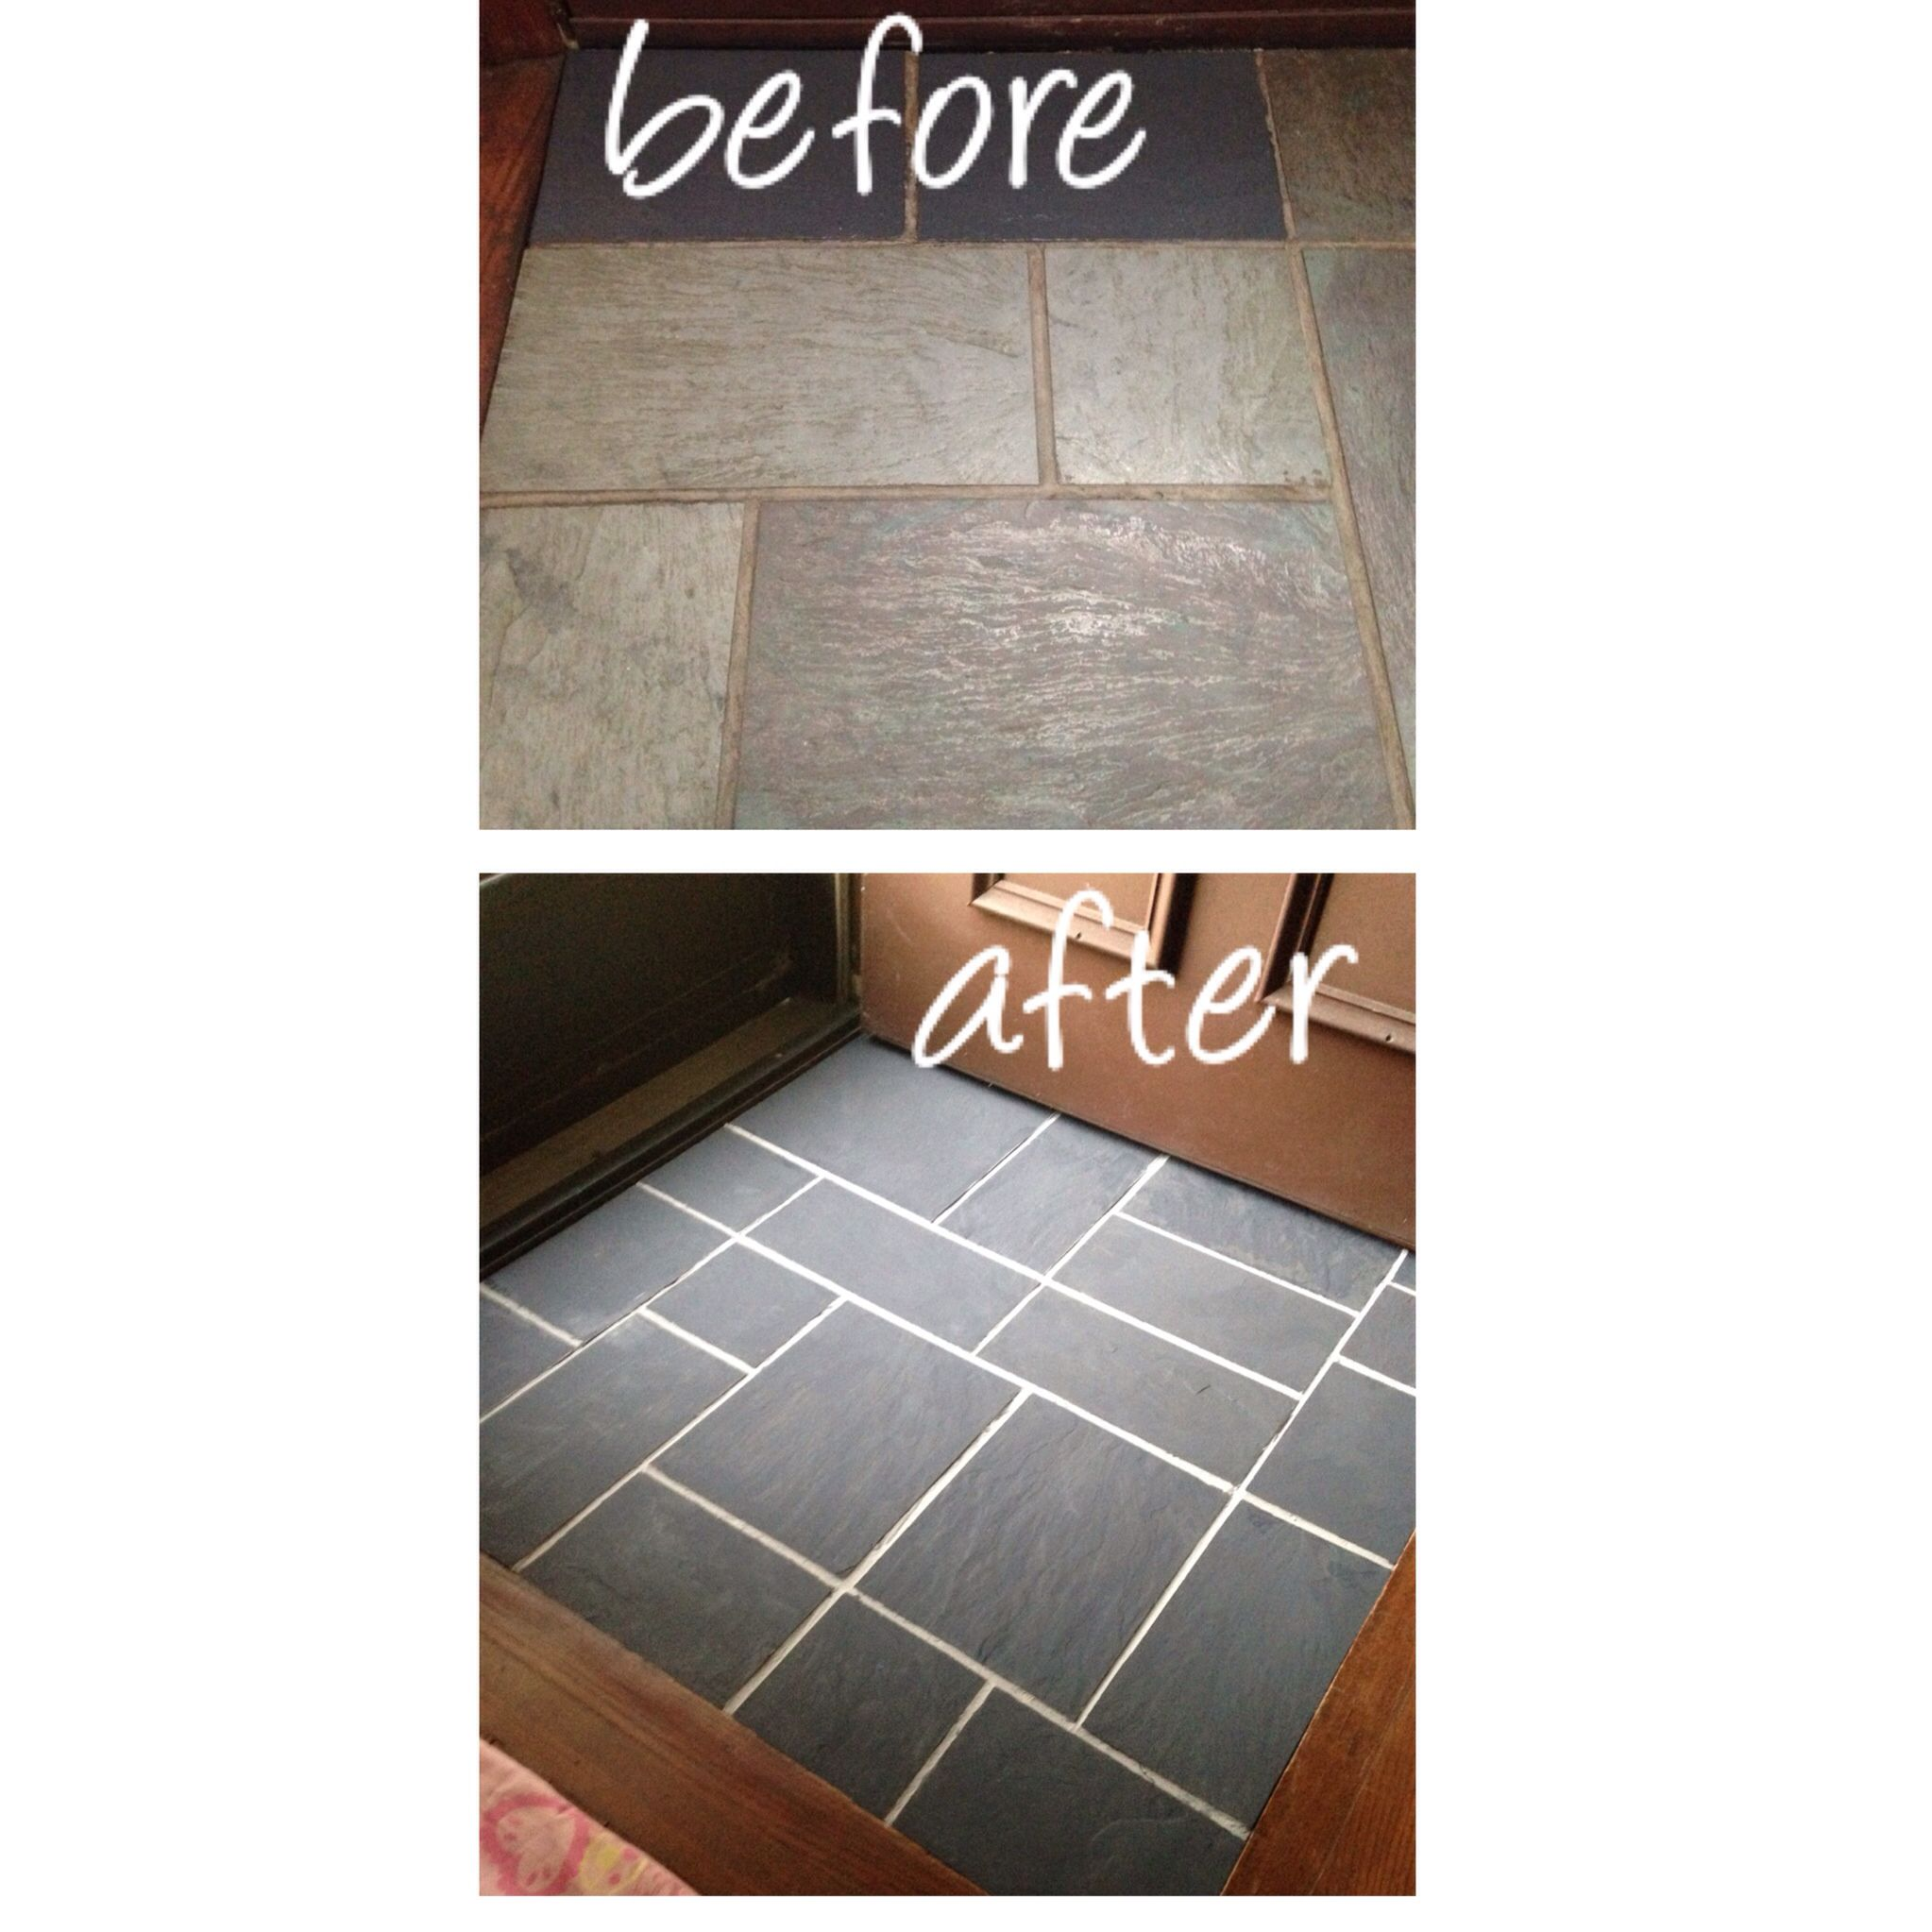 How To Remove Gloss Paint From Tiles | Tile Design Ideas